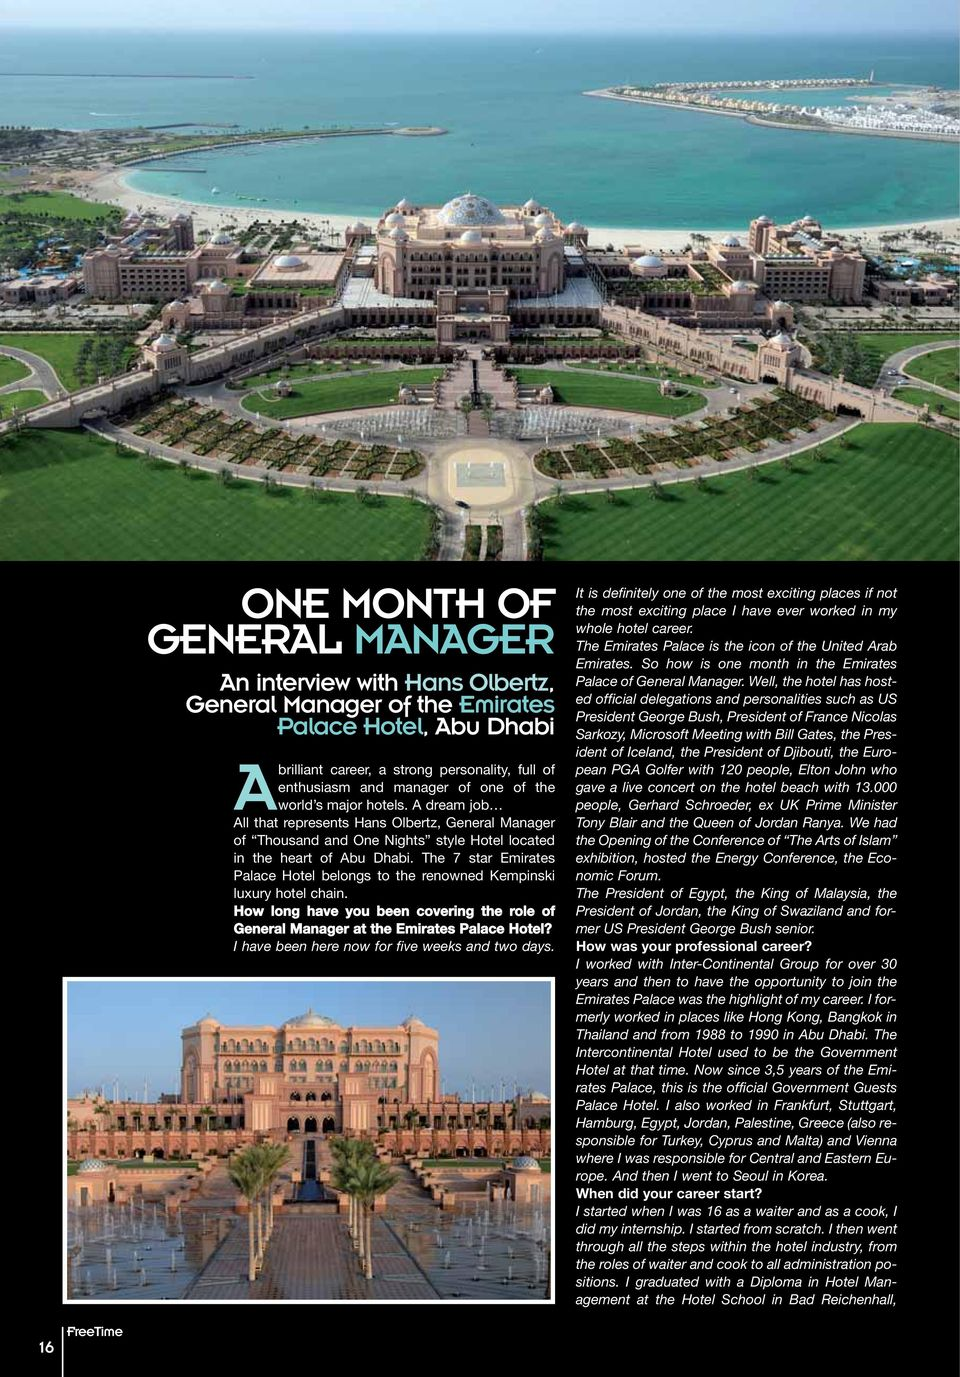 The 7 star Emirates Palace Hotel belongs to the renowned Kempinski luxury hotel chain. How long have you been covering the role of General Manager at the Emirates Palace Hotel?